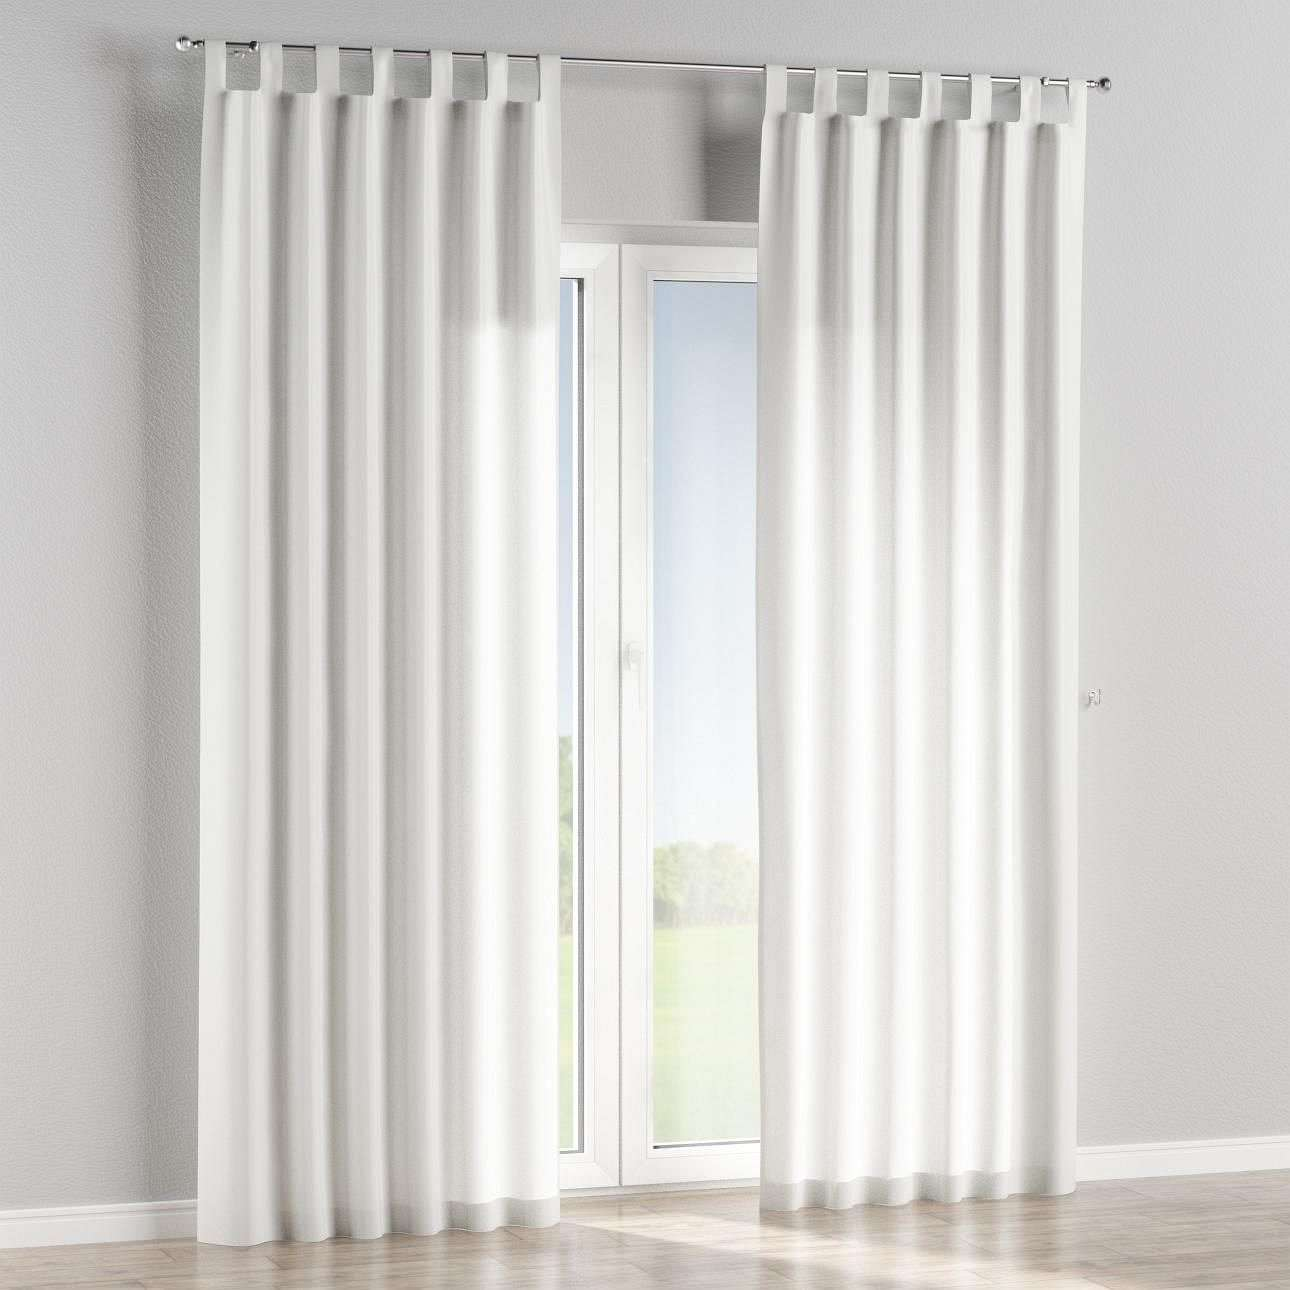 Tab top curtains in collection Cardiff, fabric: 136-26